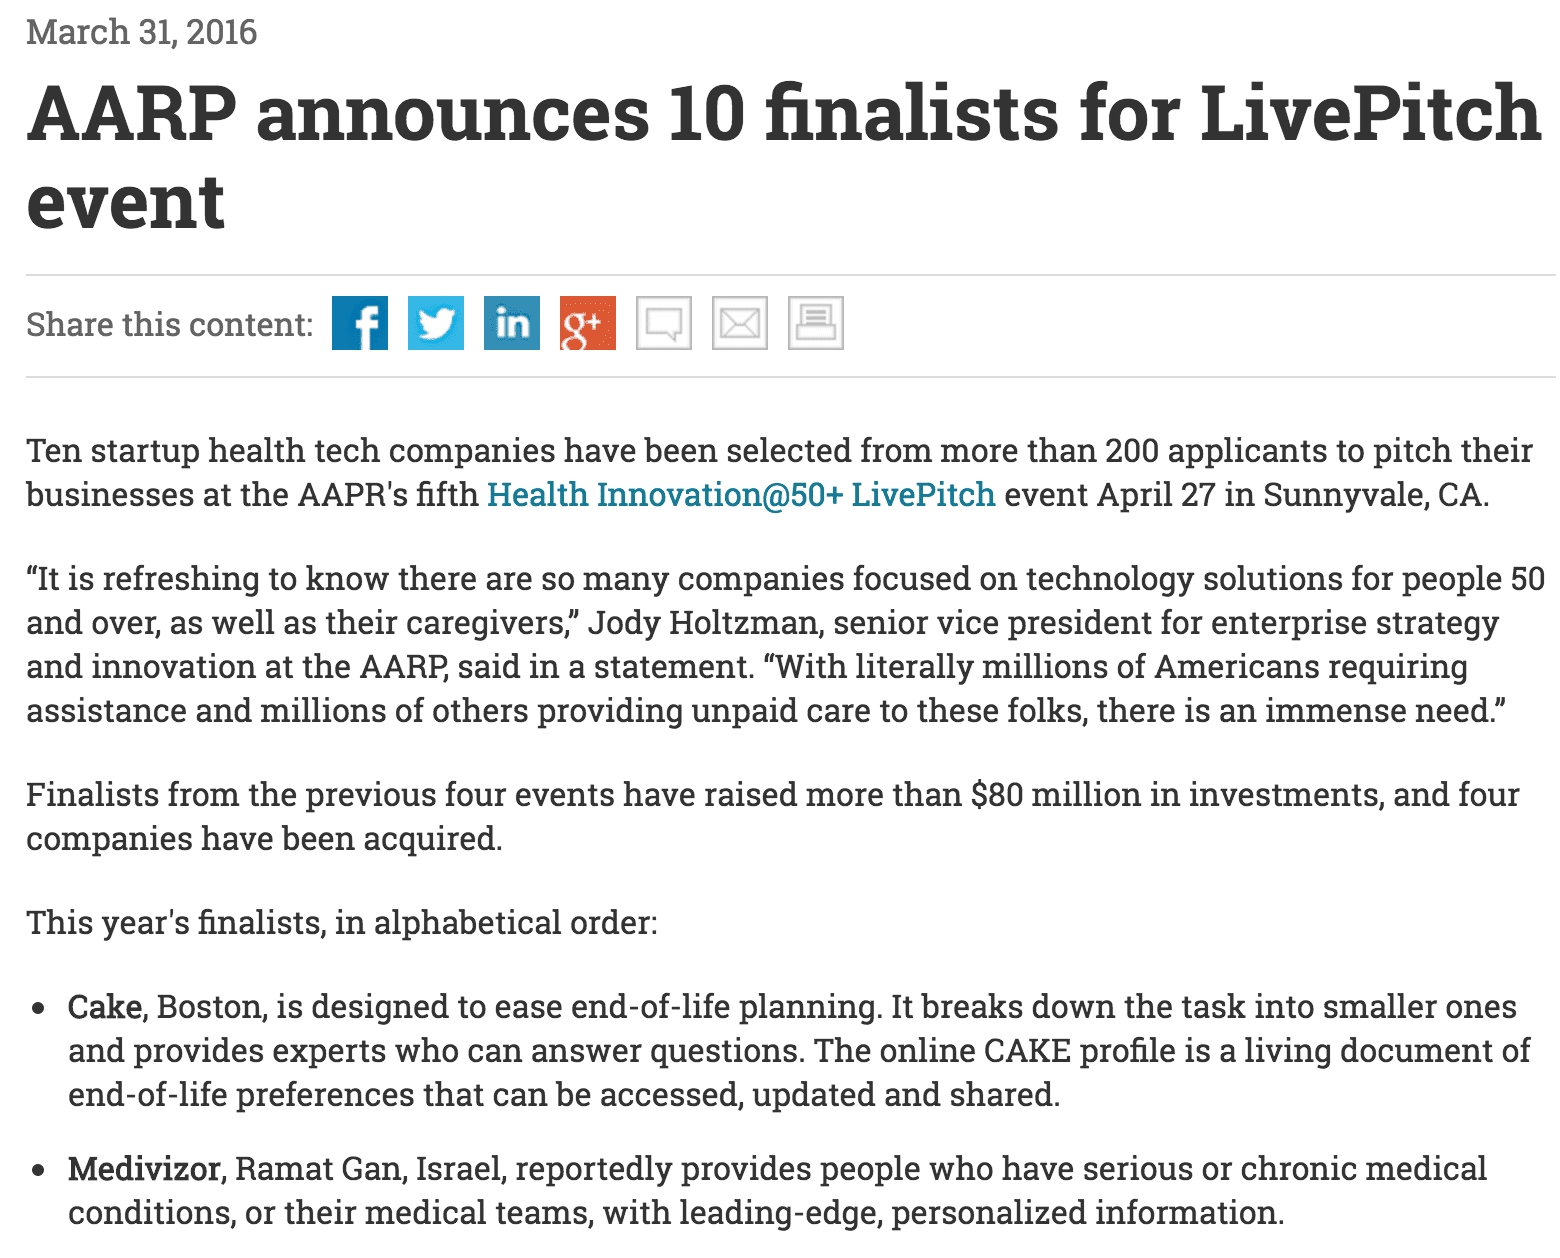 AARP announces 10 finalists for LivePitch event